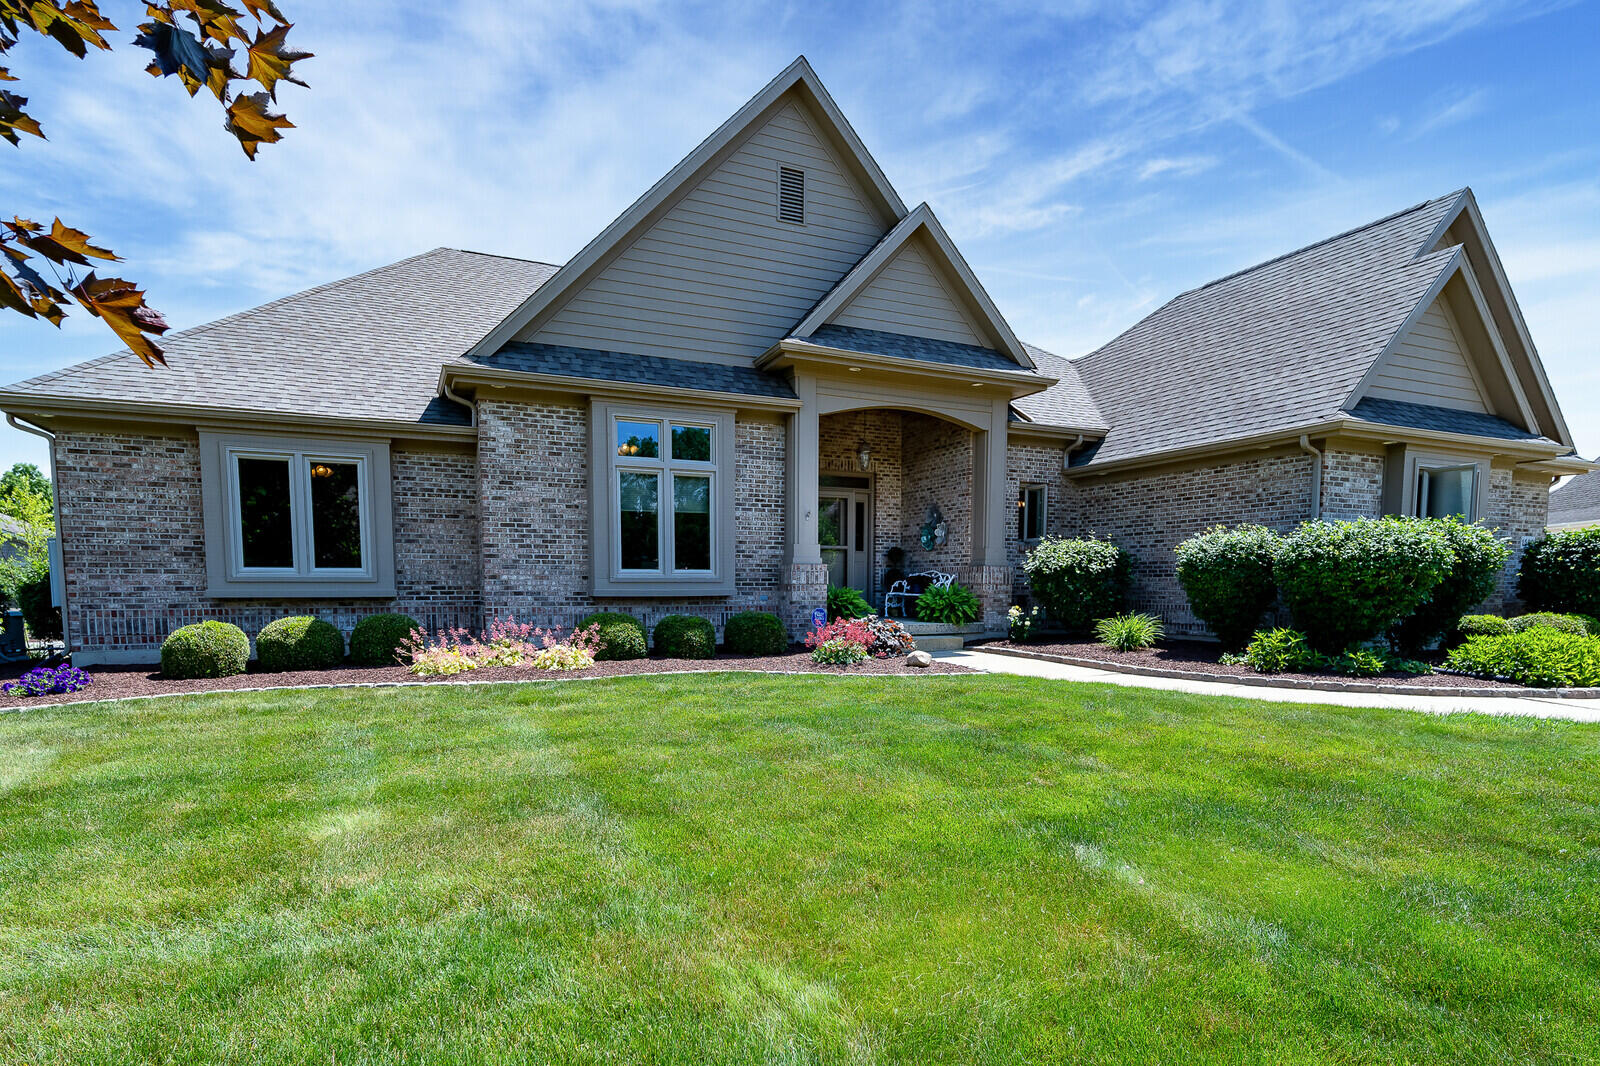 Photo 1 for 1580 Wedgewood Dr Piqua, OH 45356